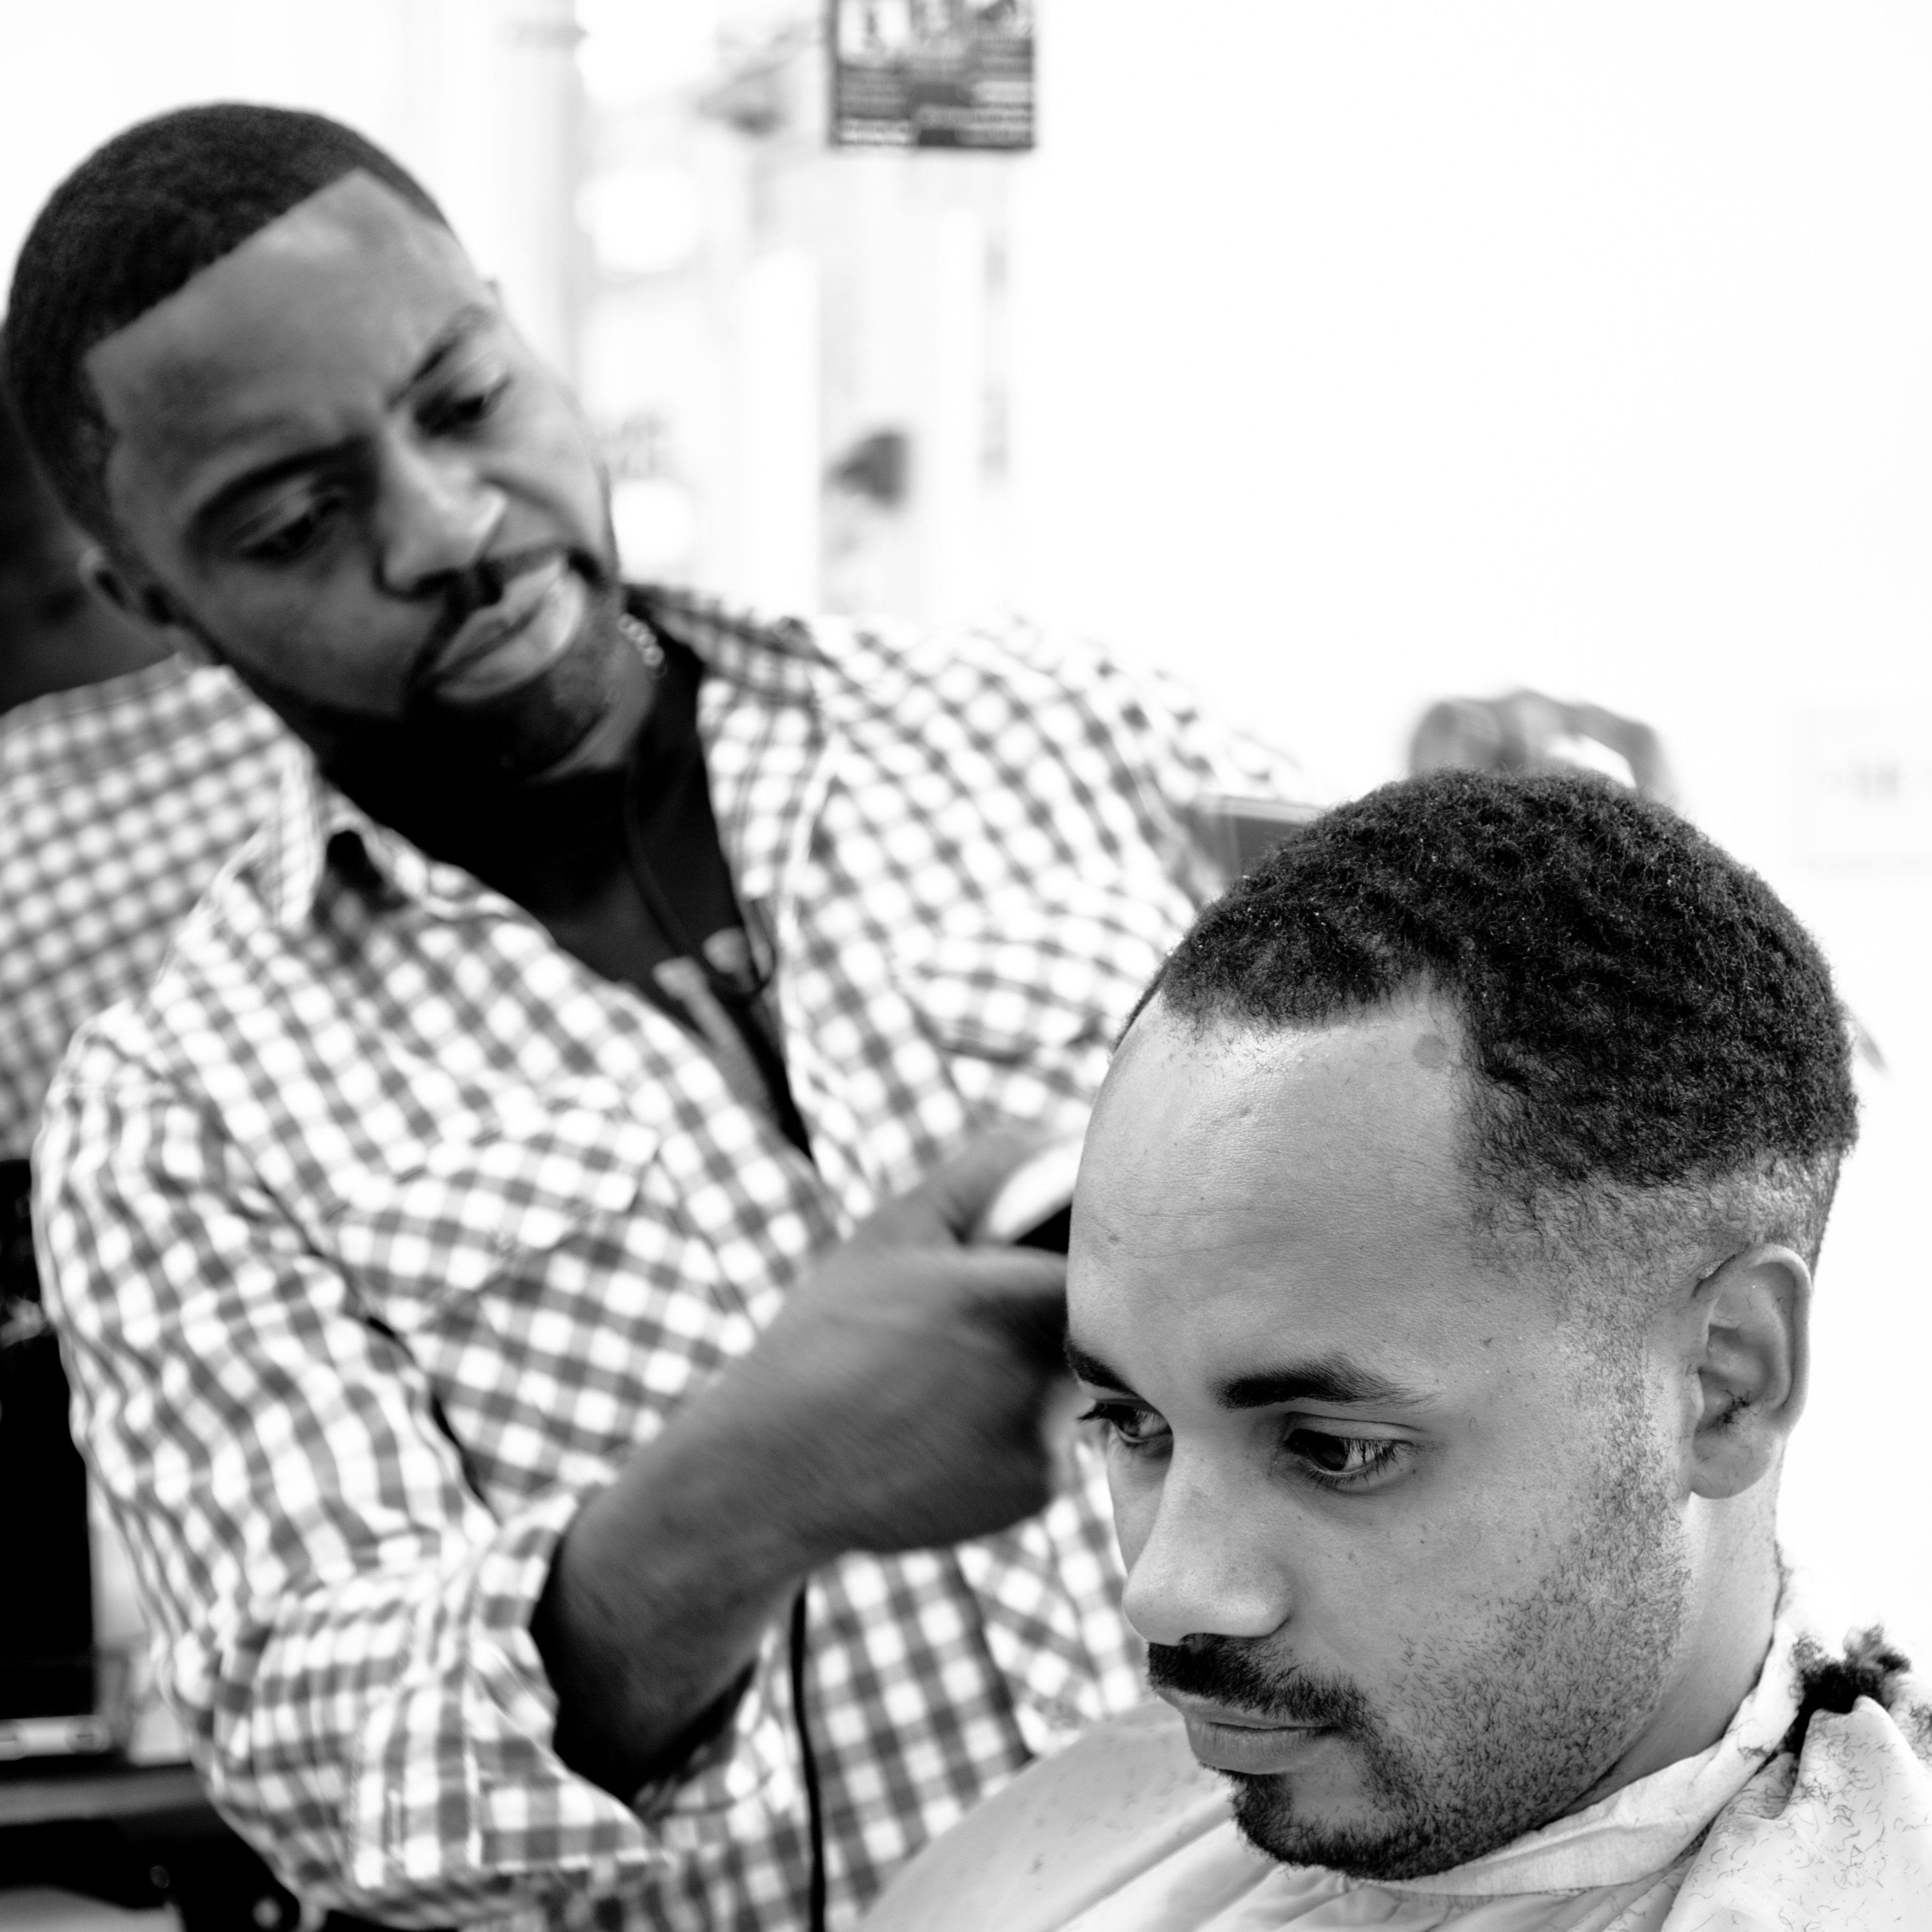 'The Fade': Four Barbers, Three Continents, One Film